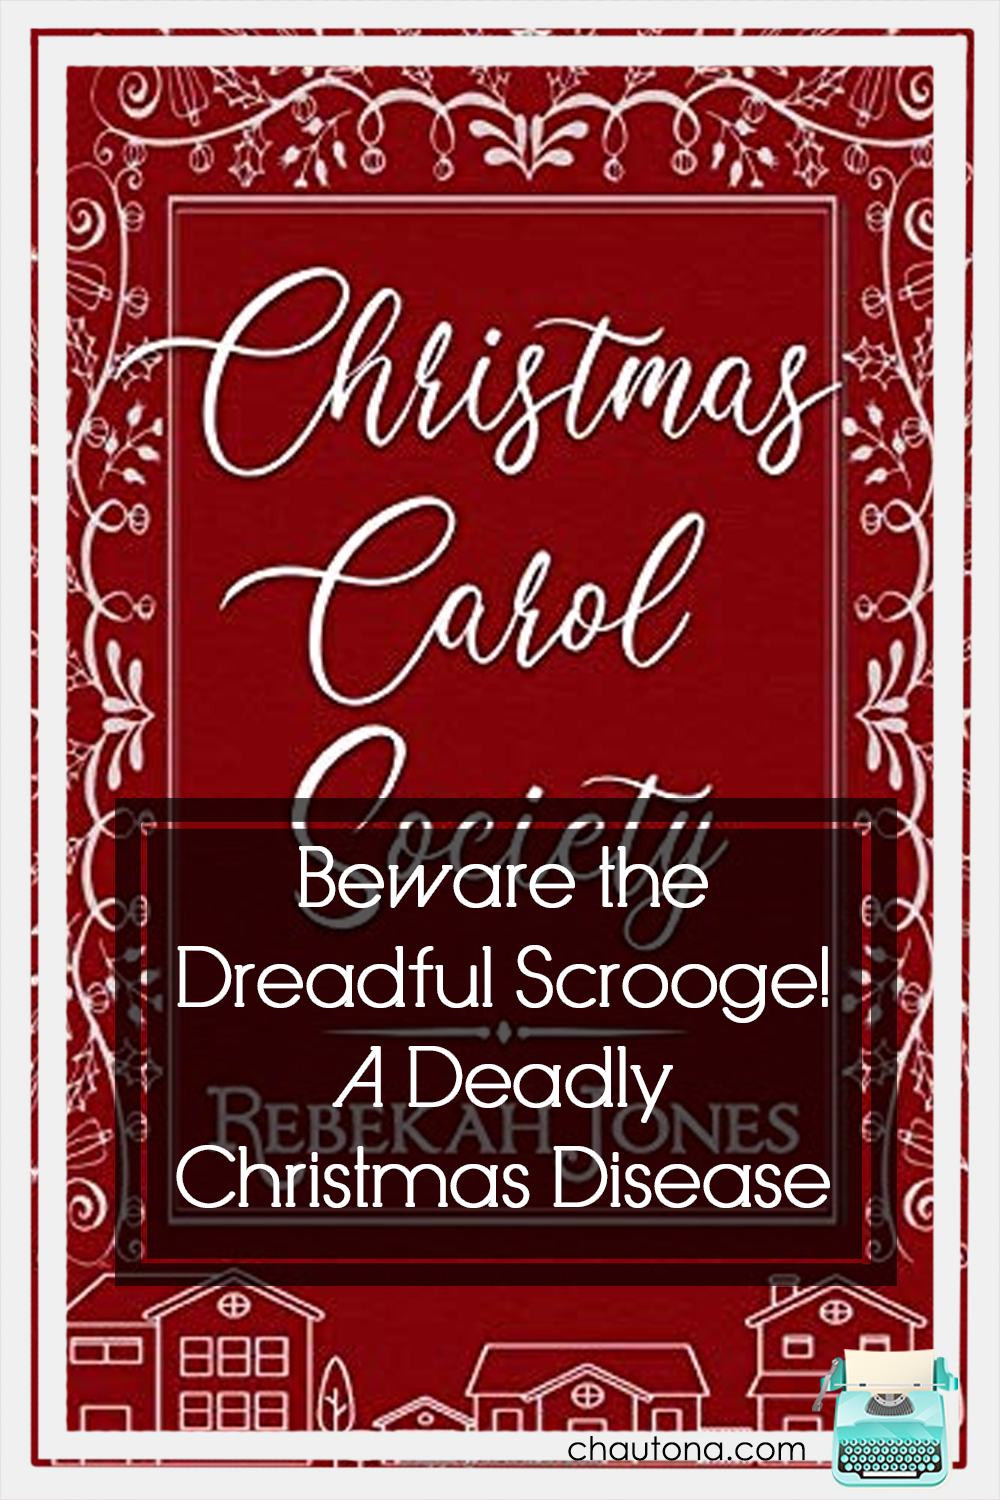 If you're anxious to get ready for Christmas, I recommend Rebekah Jones' Christmas Carol Society. Dickens feel, Scrooge, & friendship. Bliss. via @chautonahavig